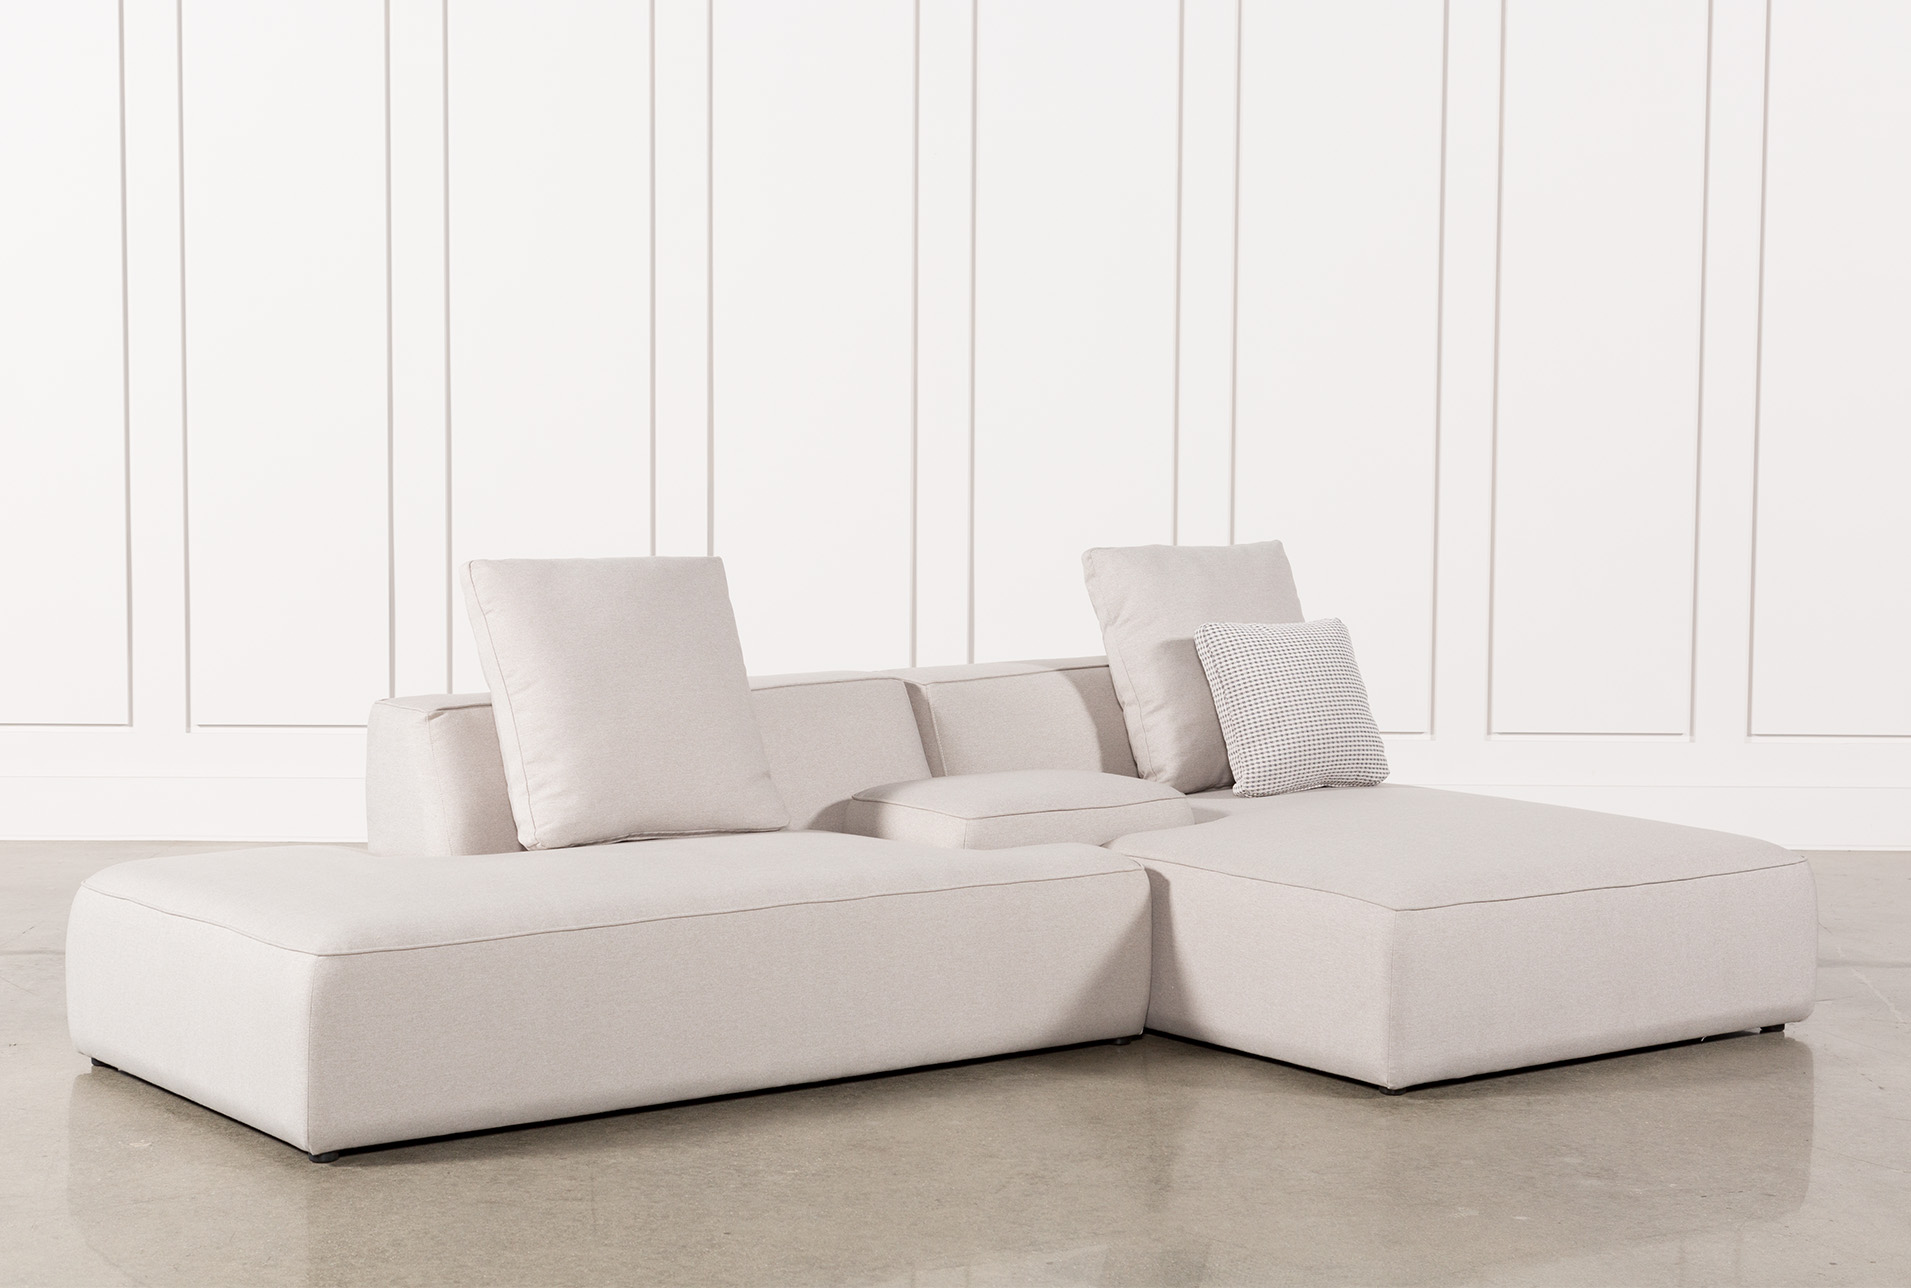 Maggie Light Grey 3 Piece Sectional W/Raf Chaise U0026amp; Solid Stool (Qty: 1)  Has Been Successfully Added To Your Cart.